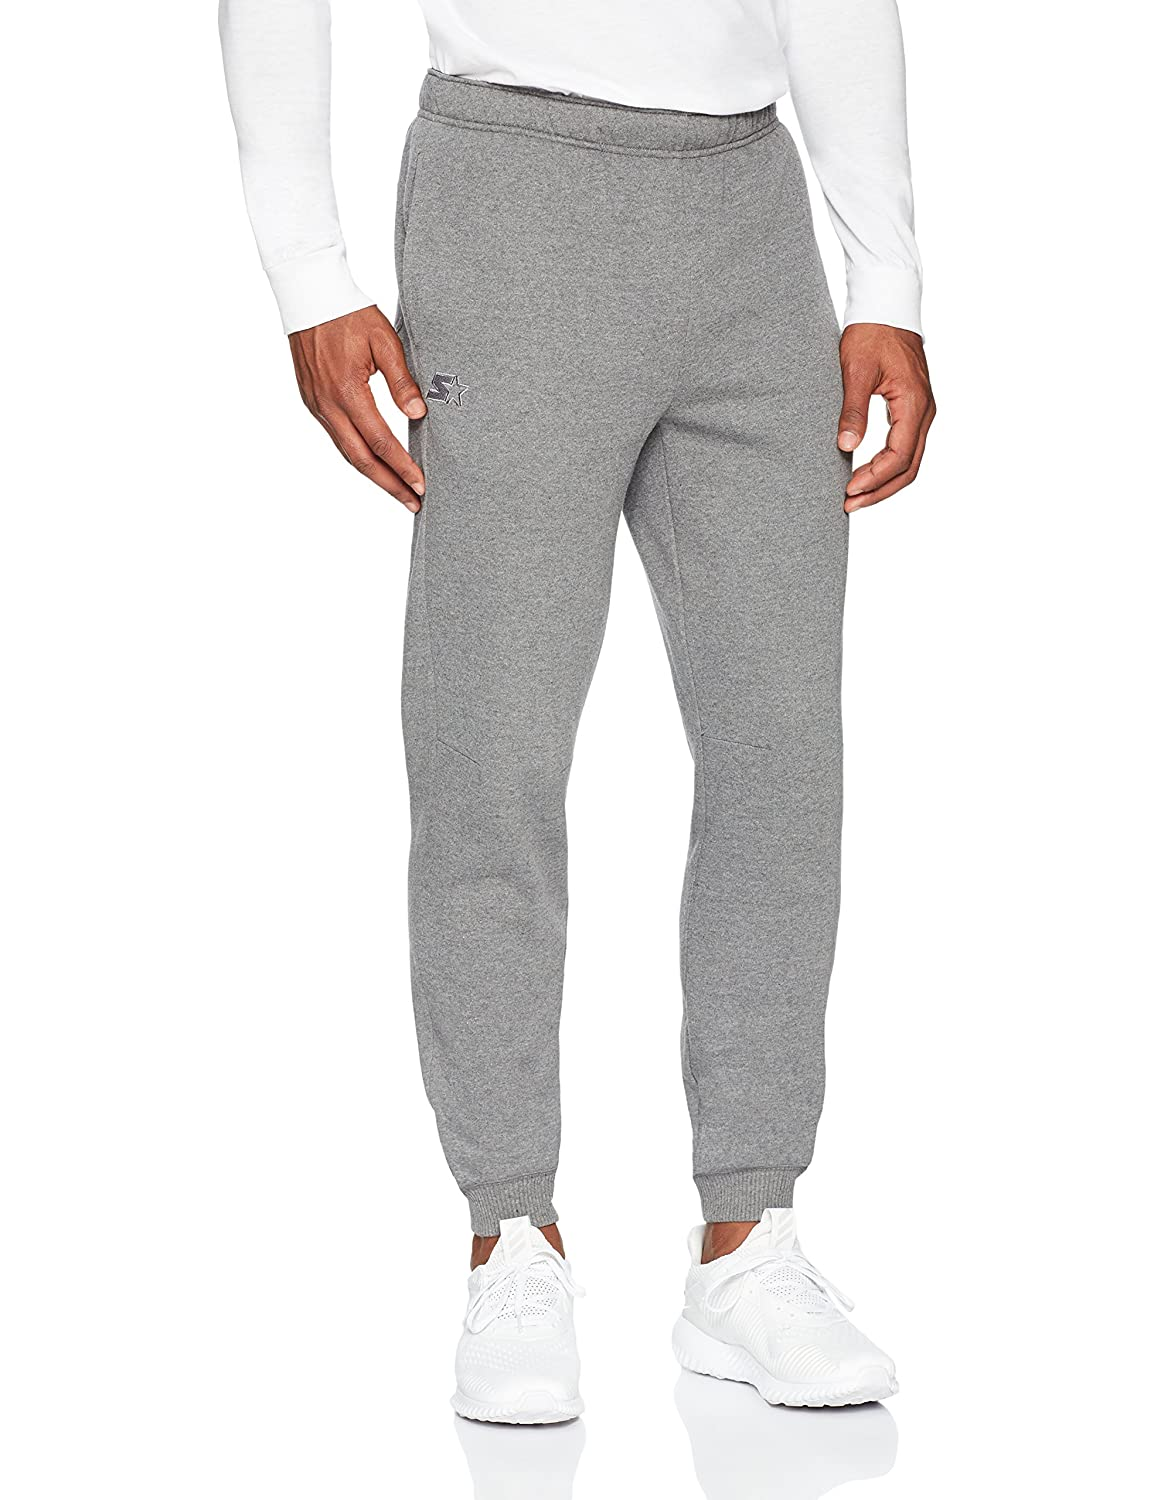 Starter Men's Jogger Sweatpants with Pockets, Prime Exclusive, Iron Grey Heather with Embroidered Logo, Extra Large S17FMB33